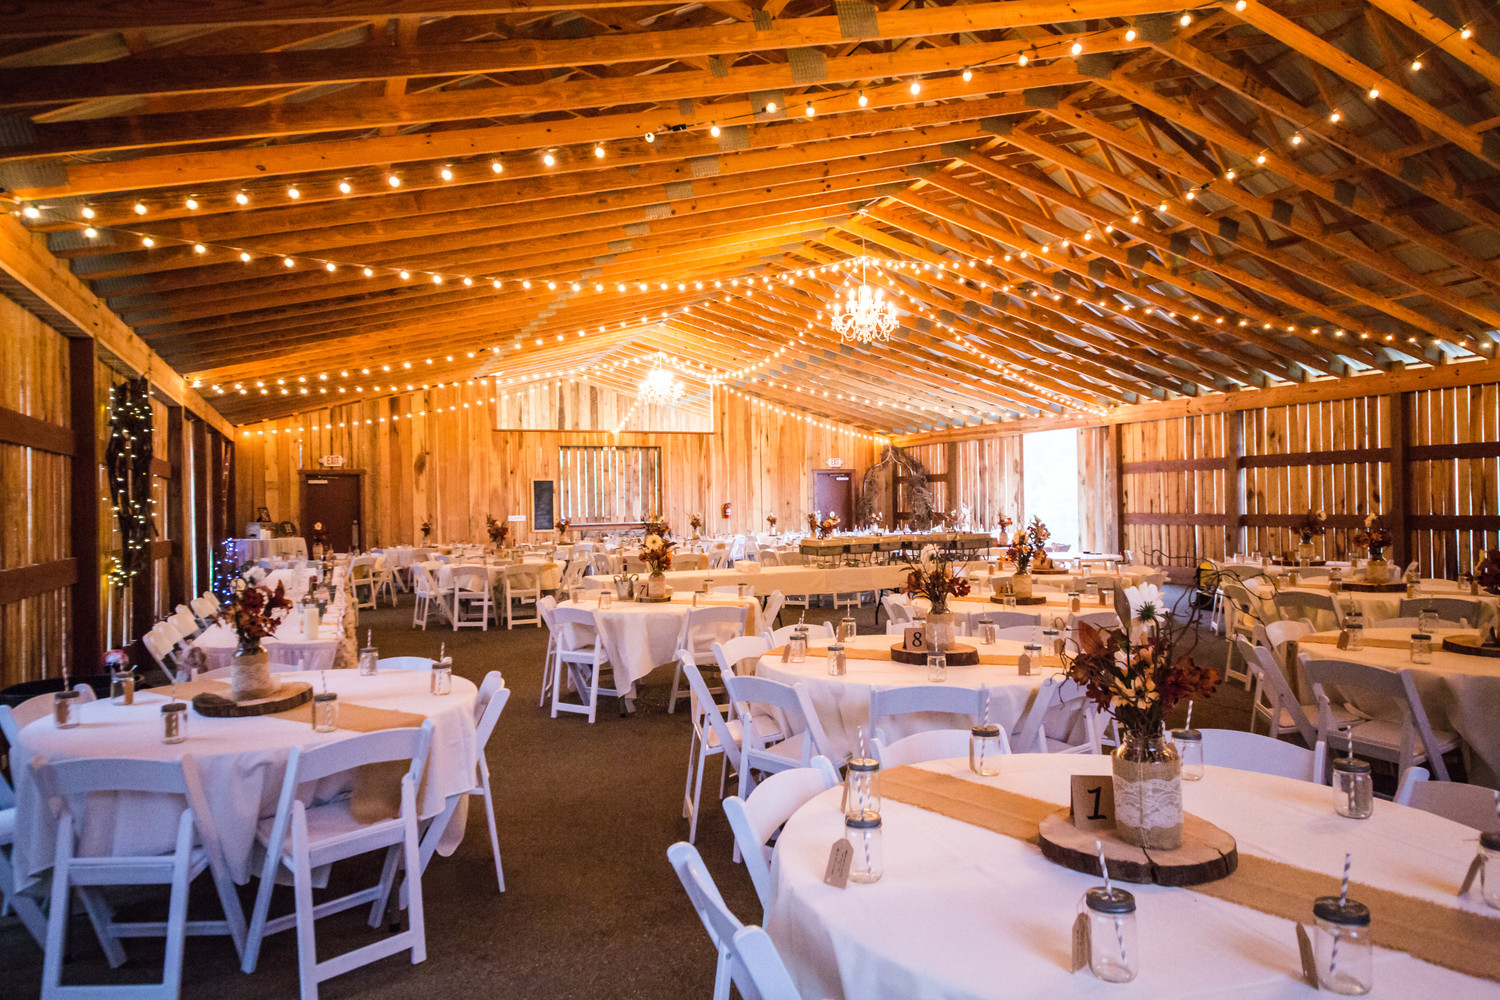 Event Planning For Beginners, Part 3: The Venue